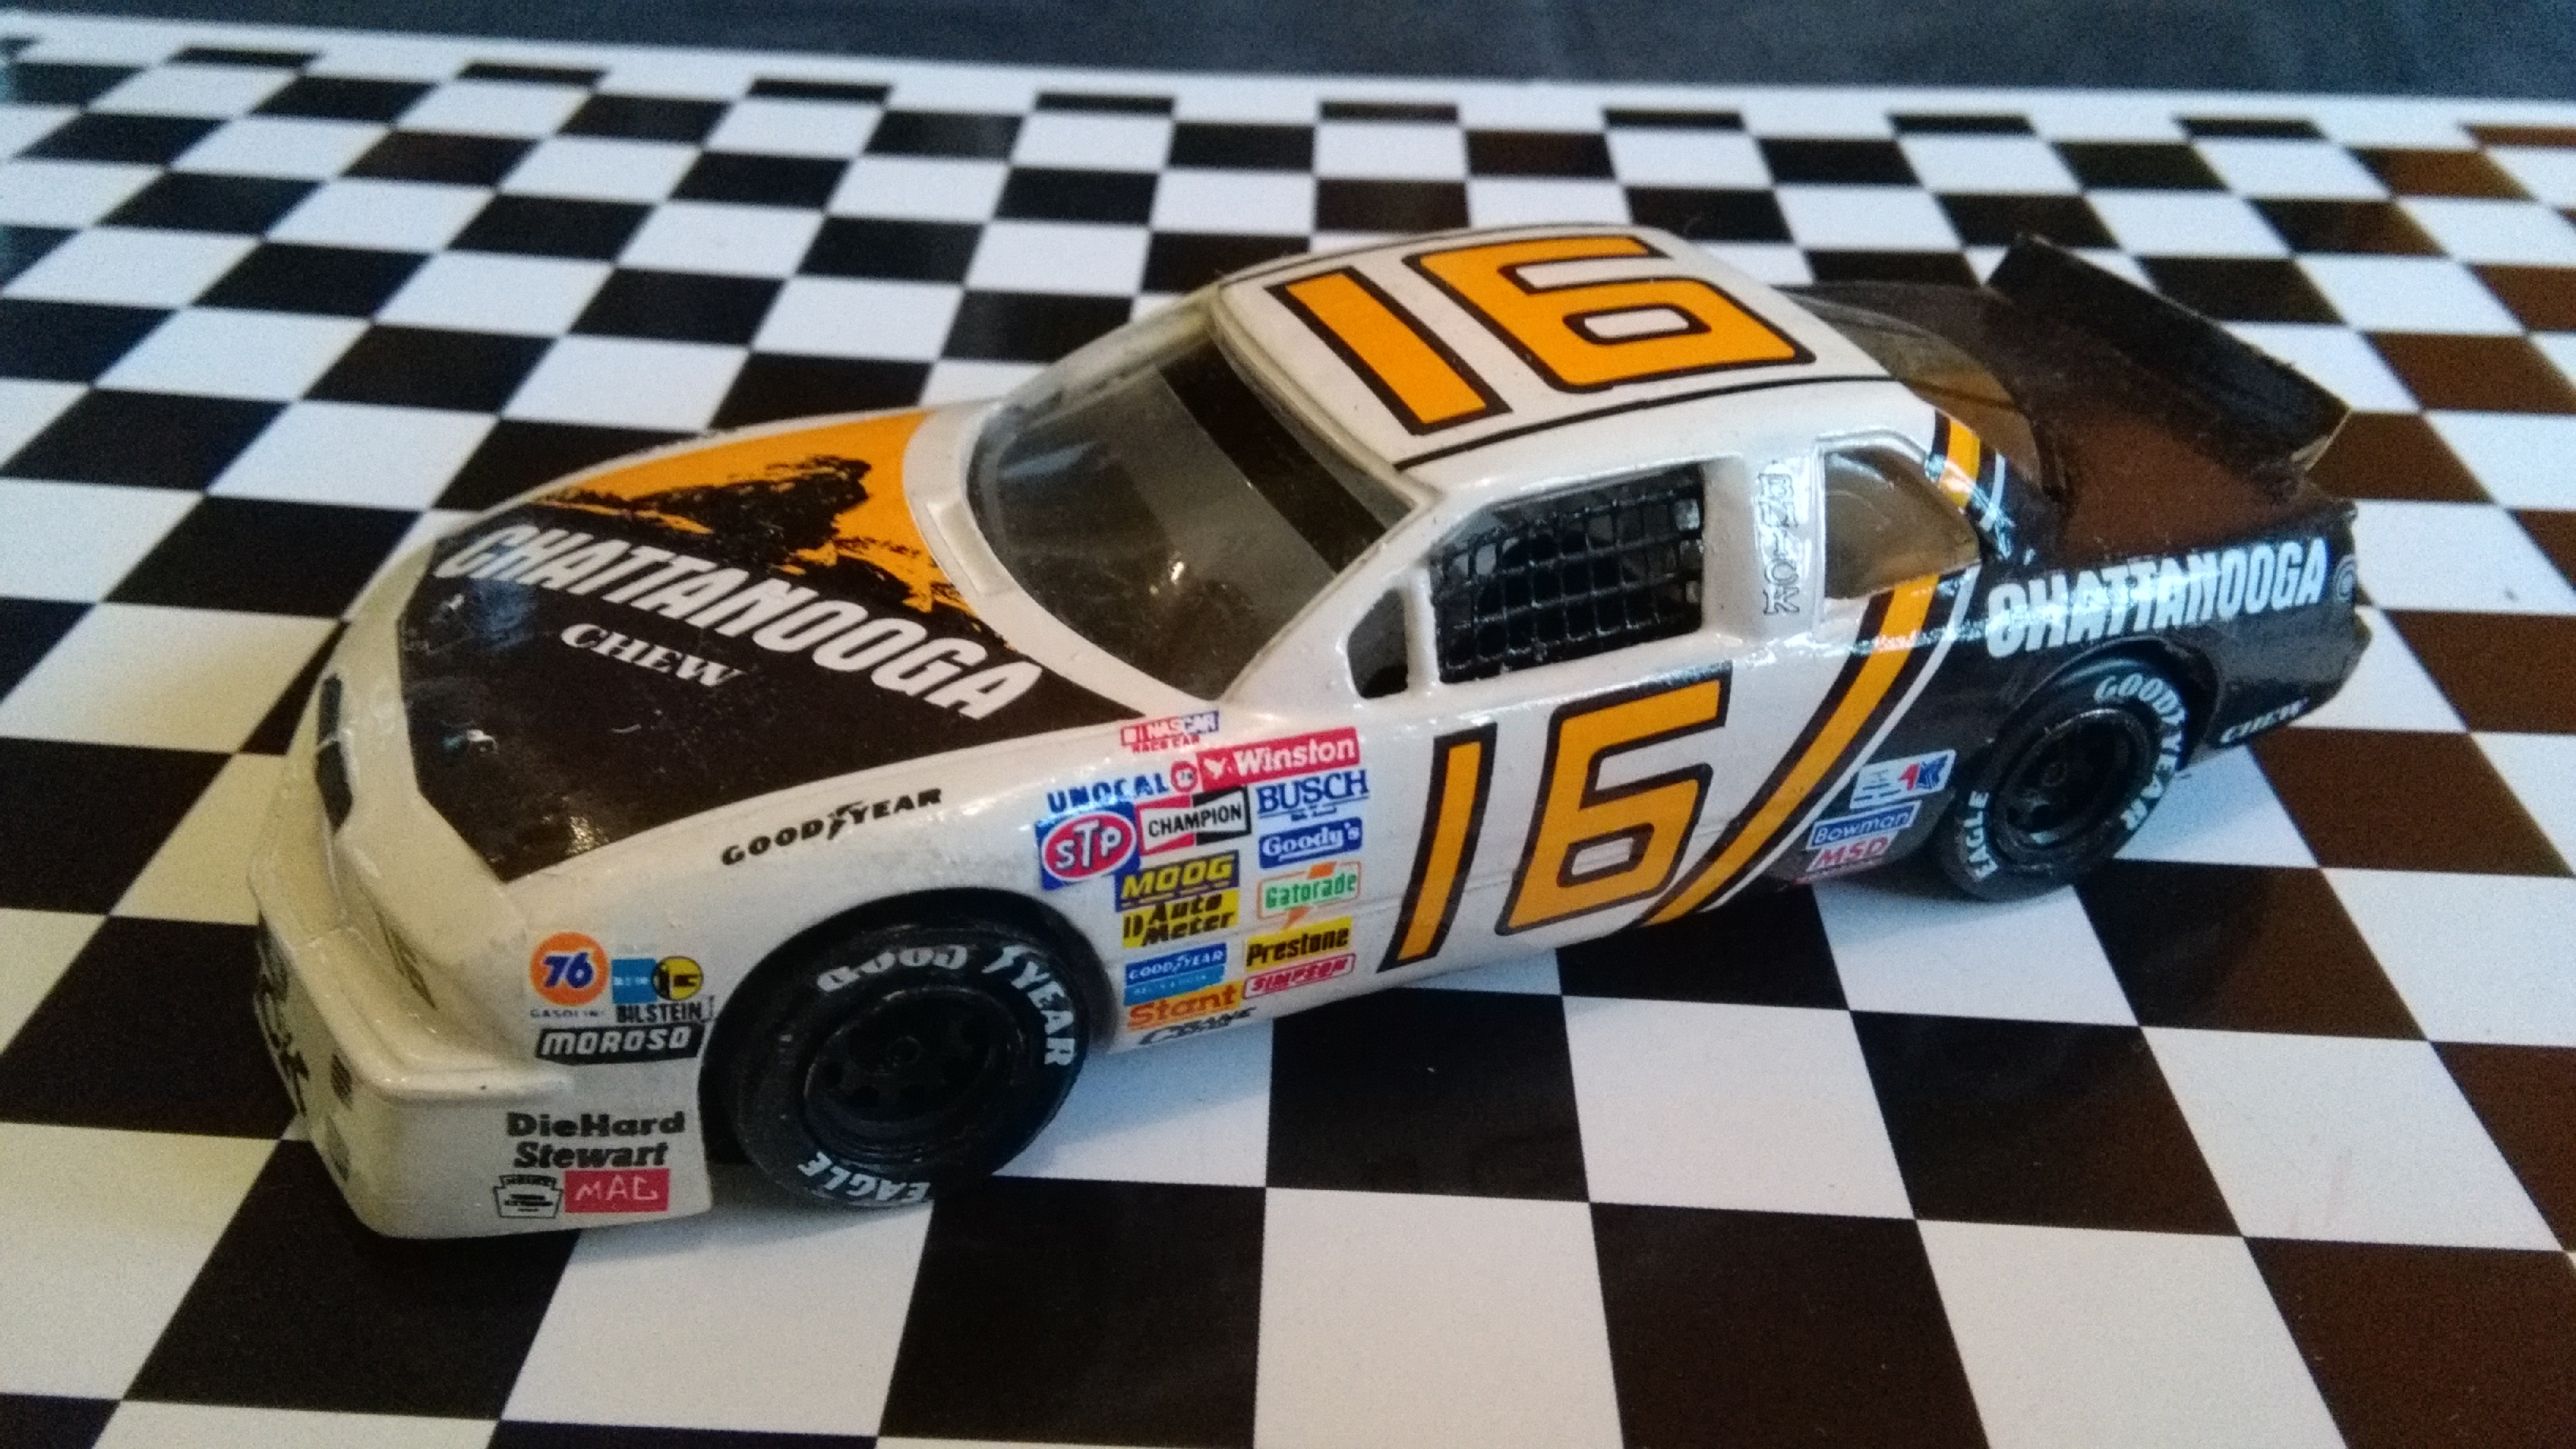 Buick Regal Chattanooga starter 1/43 (not me) 808304IMG20170211141404